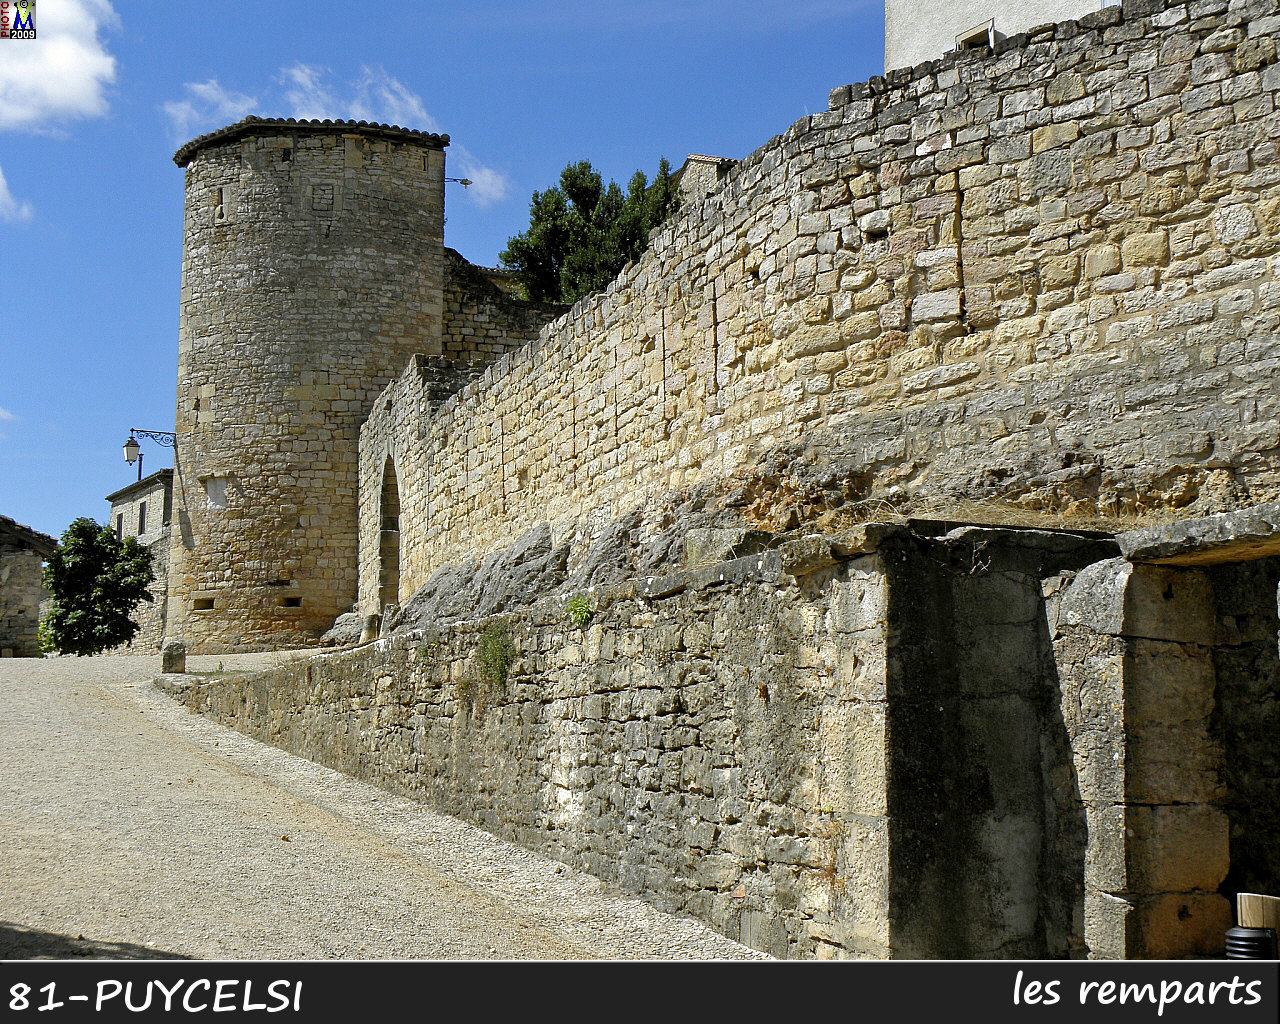 81PUYCELSI_remparts_102.jpg